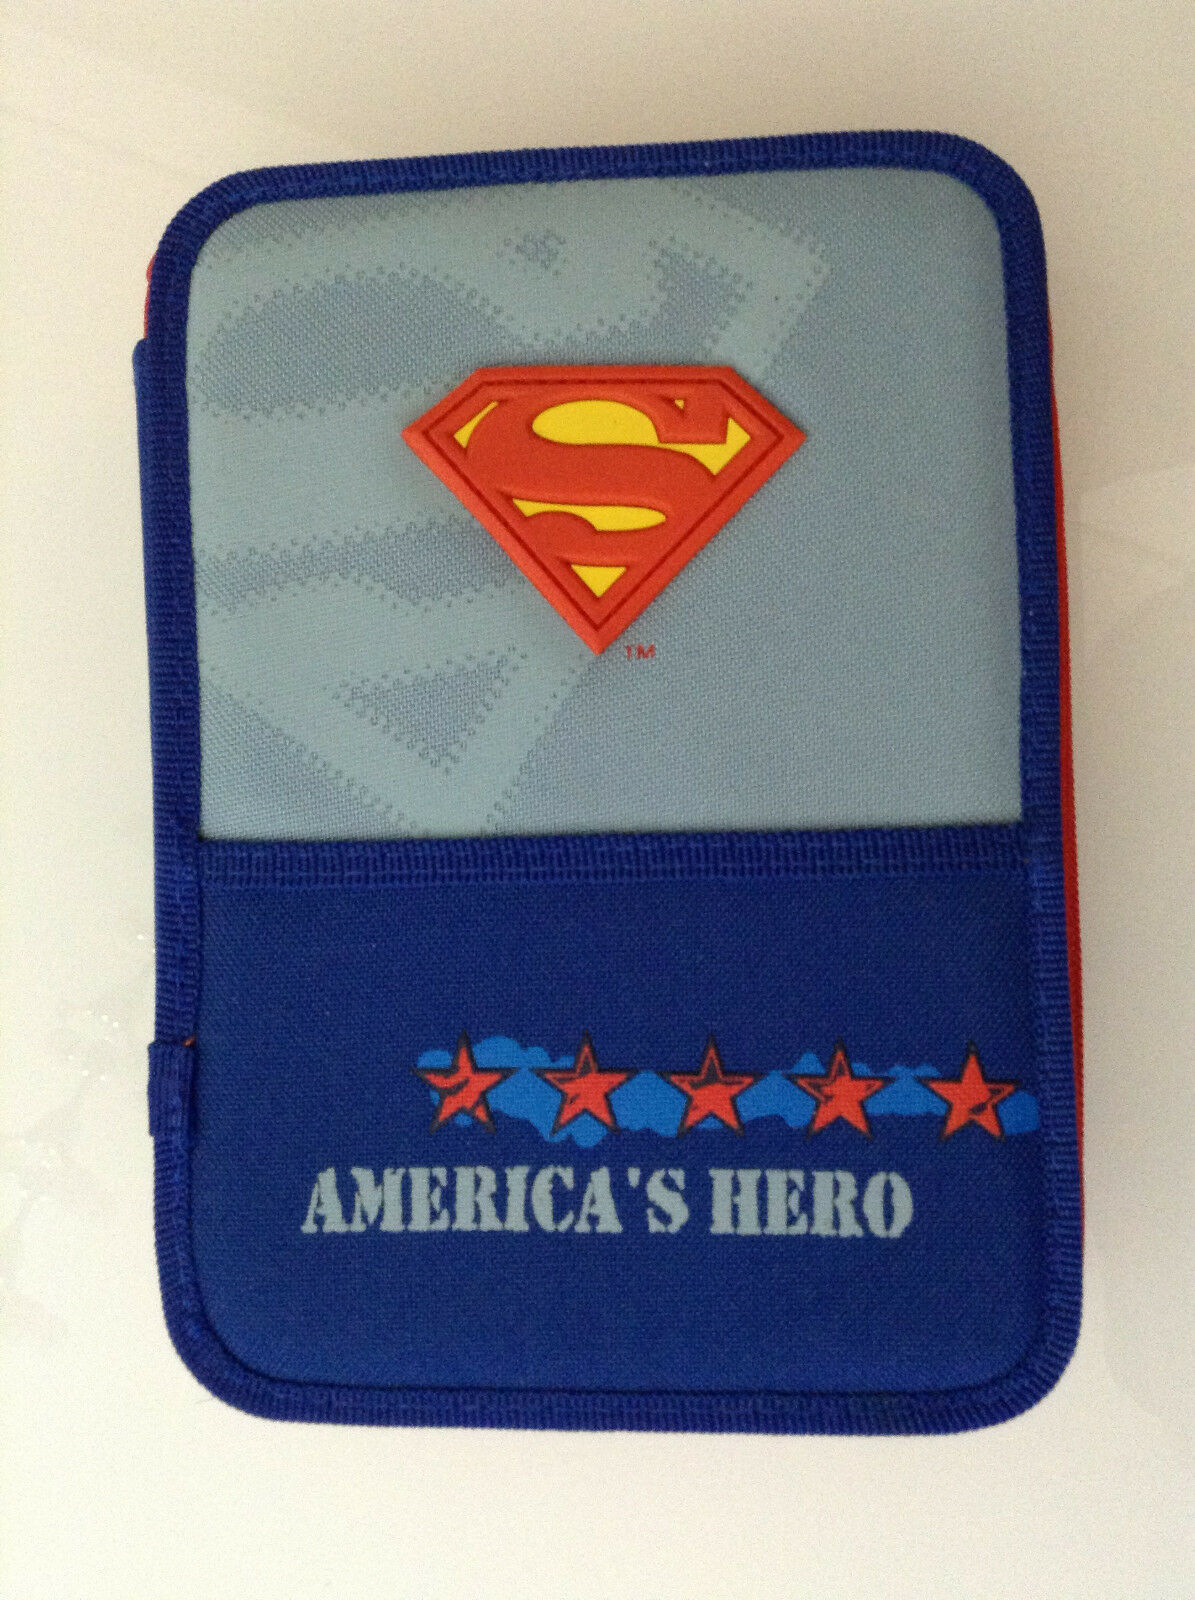 SUPERMAN EMBOSSED EMBOSSED EMBOSSED SHIELD SIGIL AMERICA'S HERO DOUBLE PENCIL BOX CASE FULL DC 123 154f81